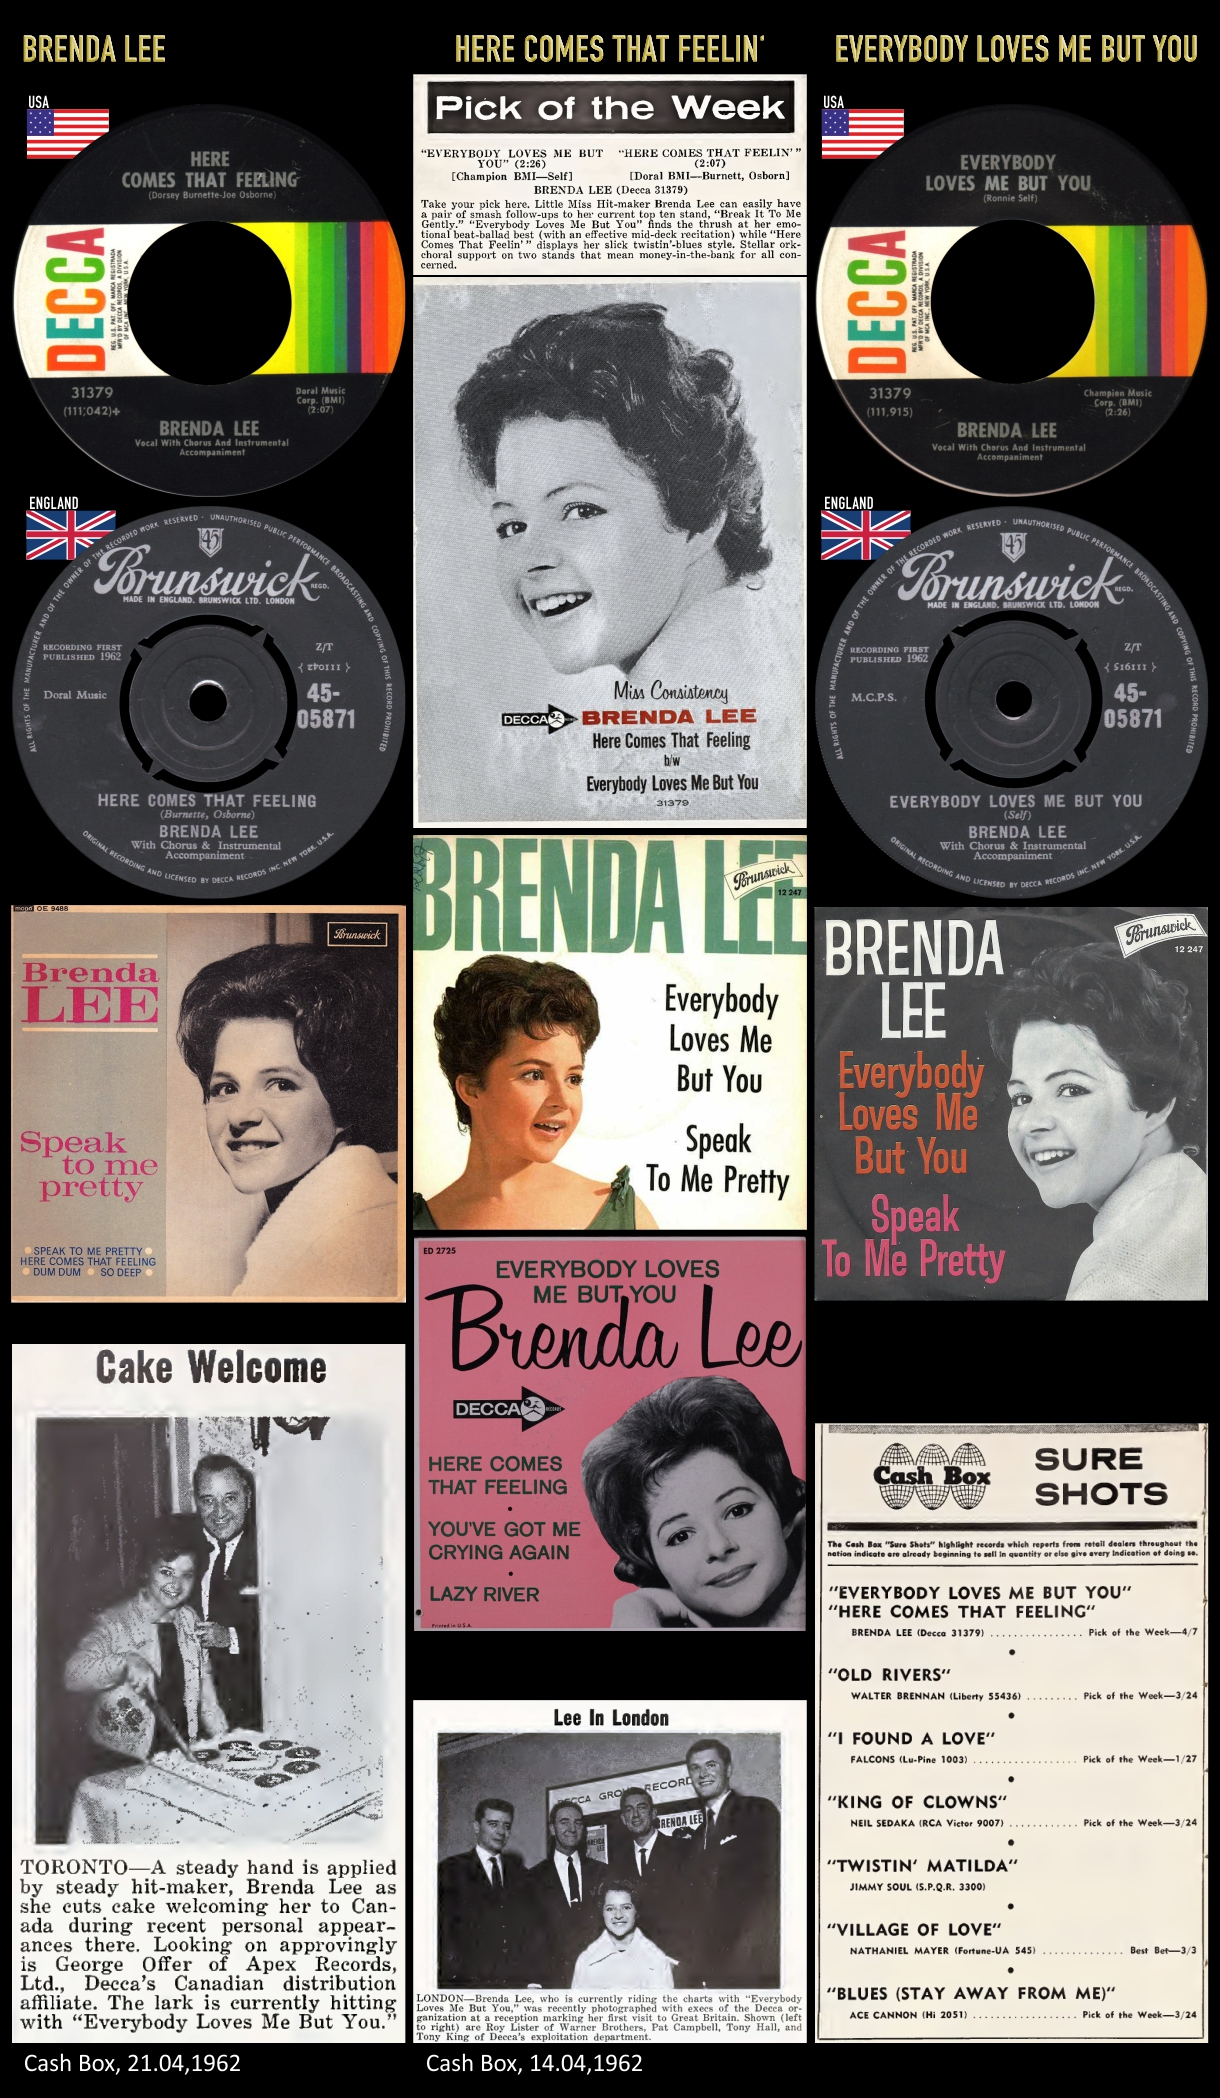 620428_Brenda Lee_Every Body Loves Me But You_Here Comes That Feelin'